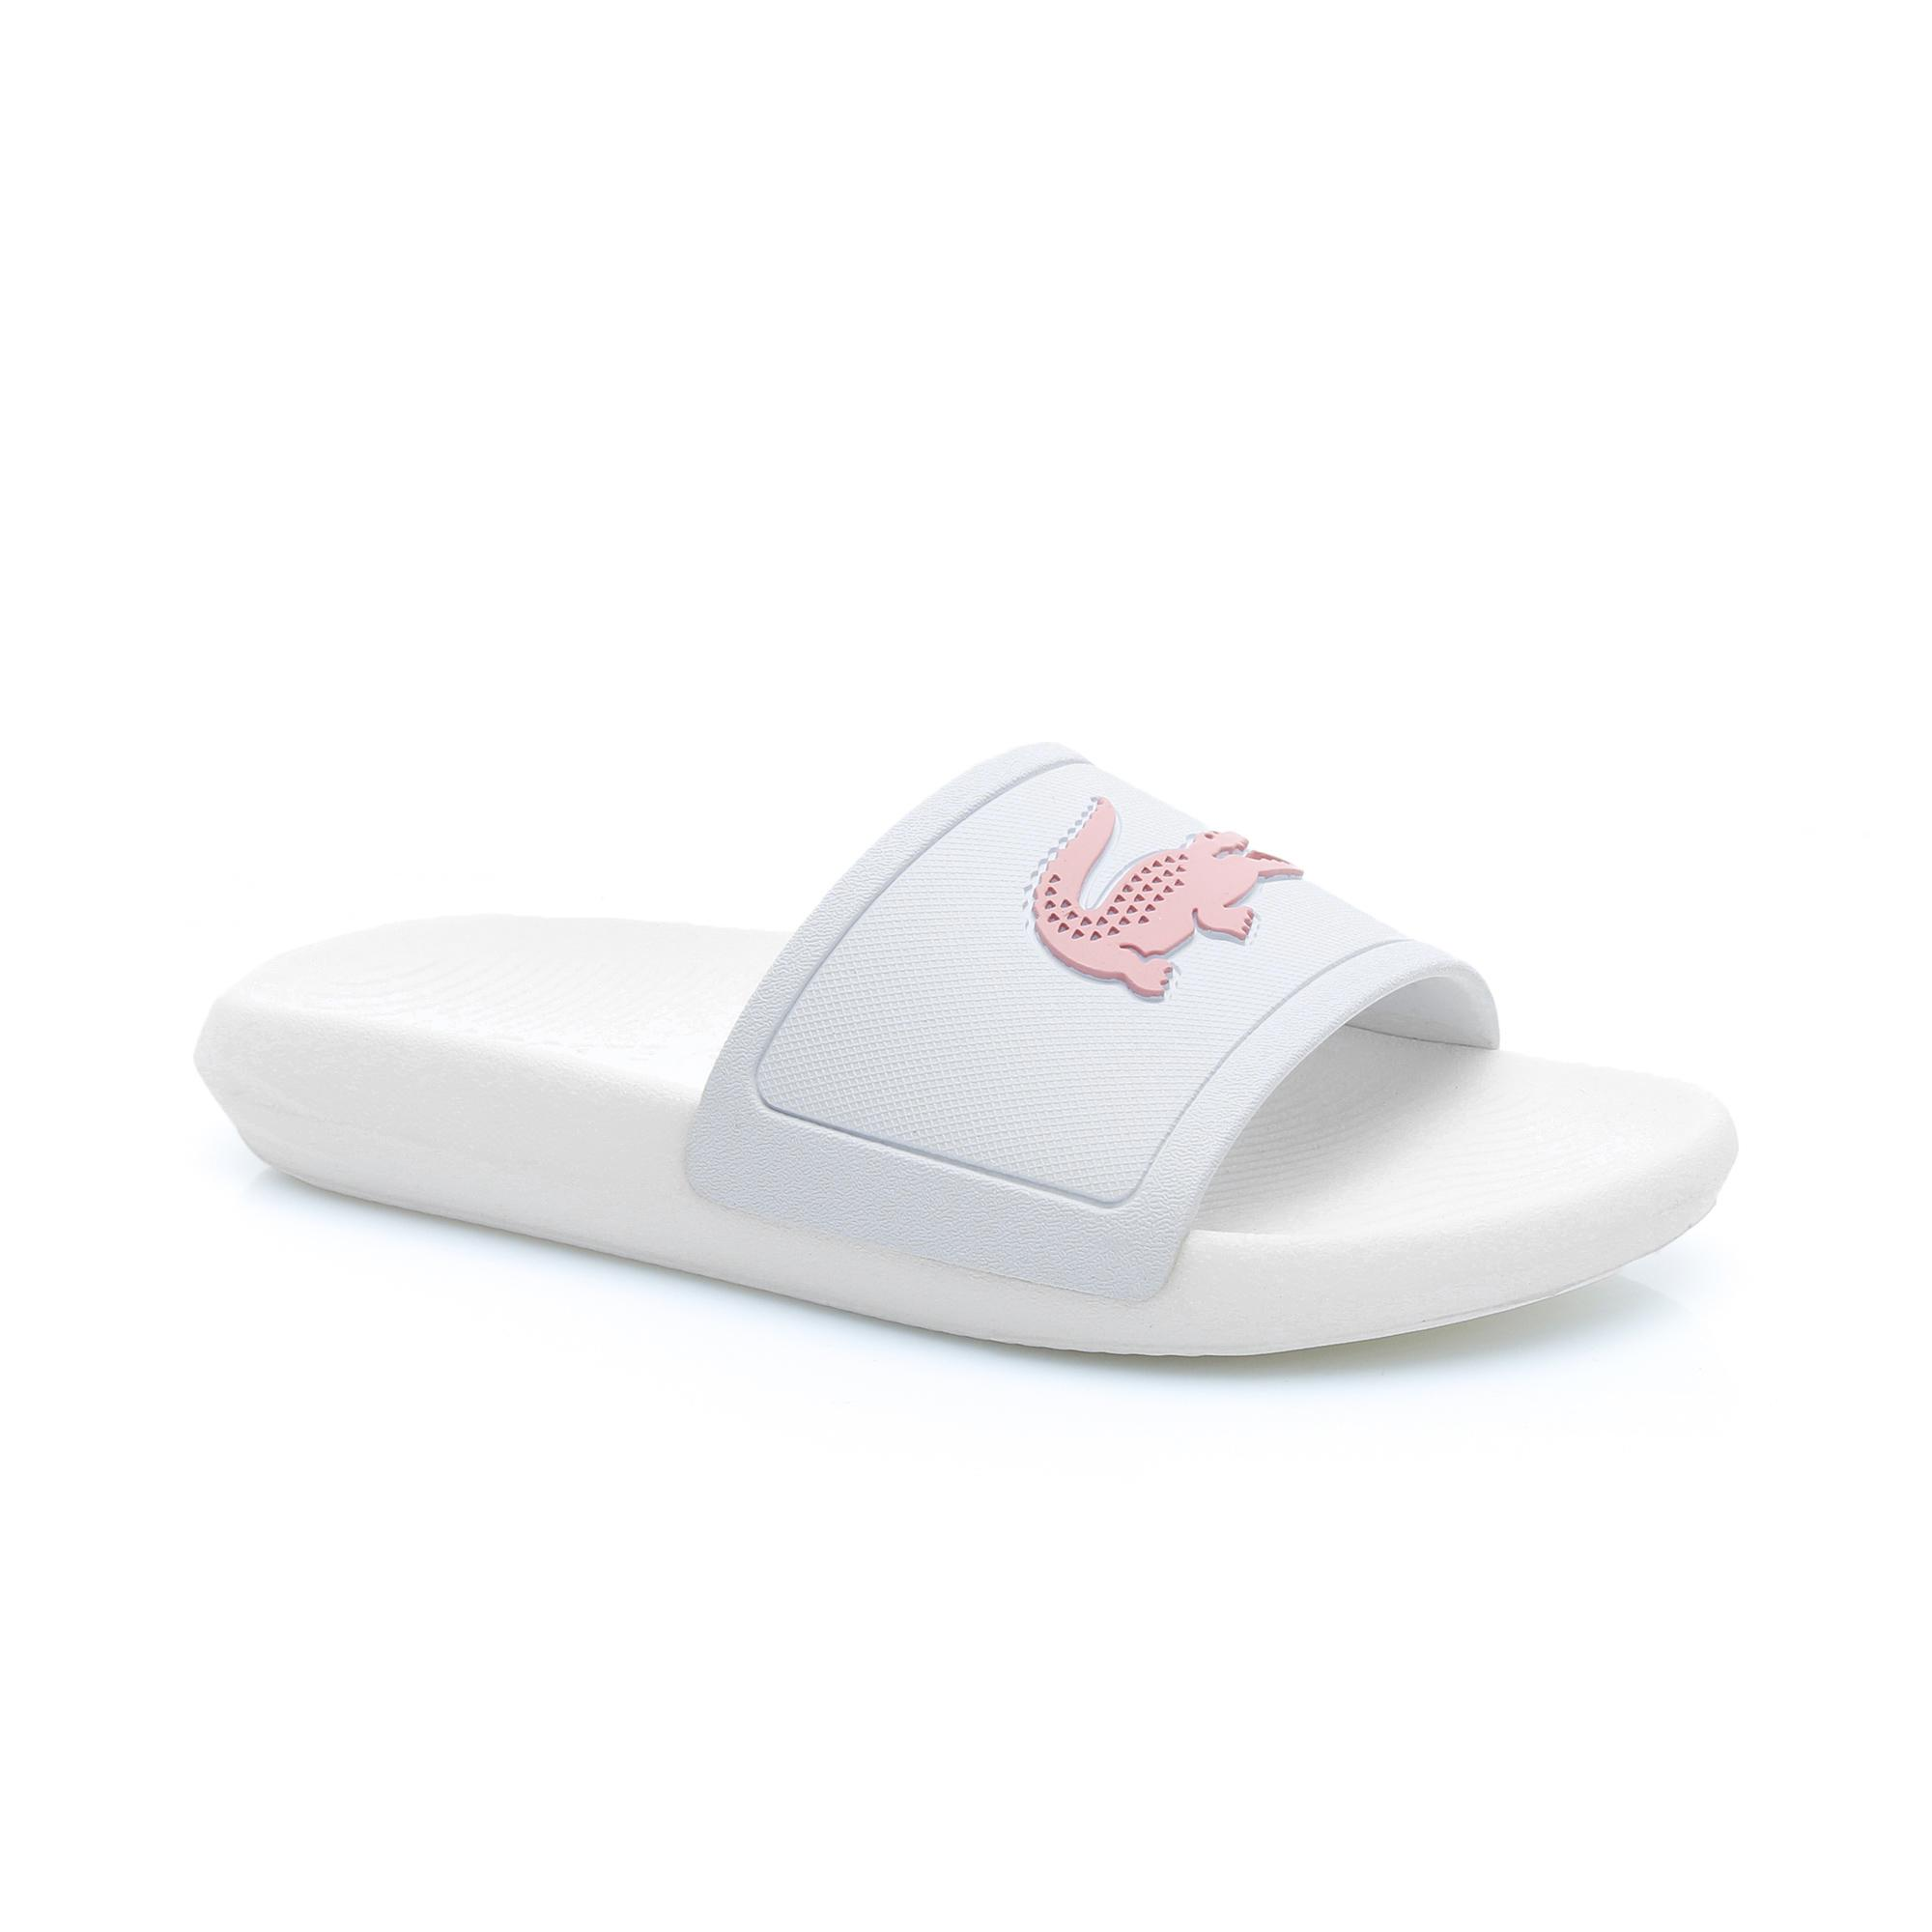 Lacoste Women's Croco Water-repellent Synthetic Slides